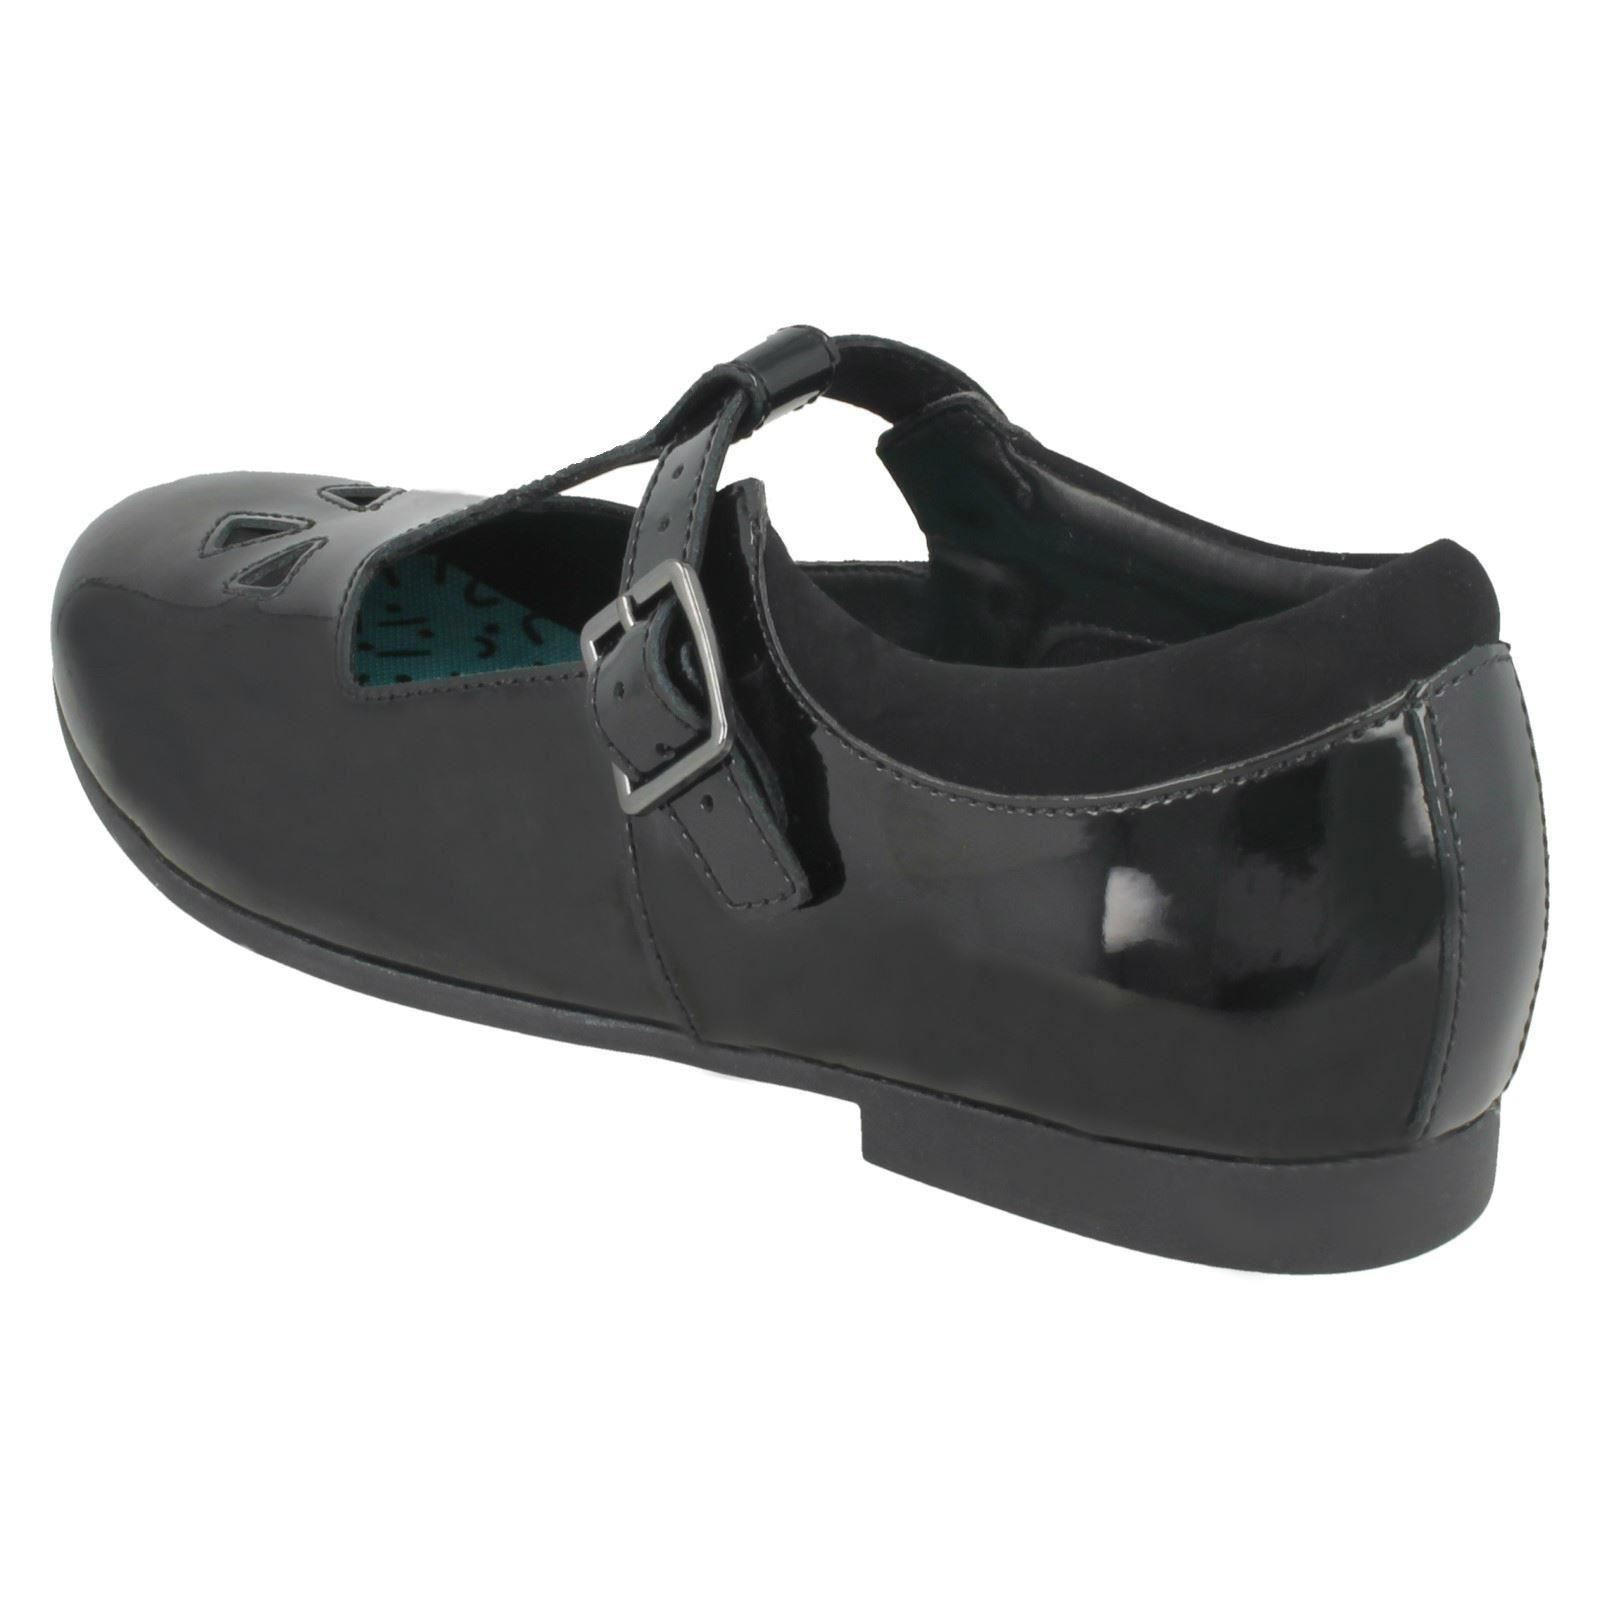 BLACK PATENT LEATHER GIRLS T-BAR SCHOOL SHOES CLARKS SELSEY PLAY